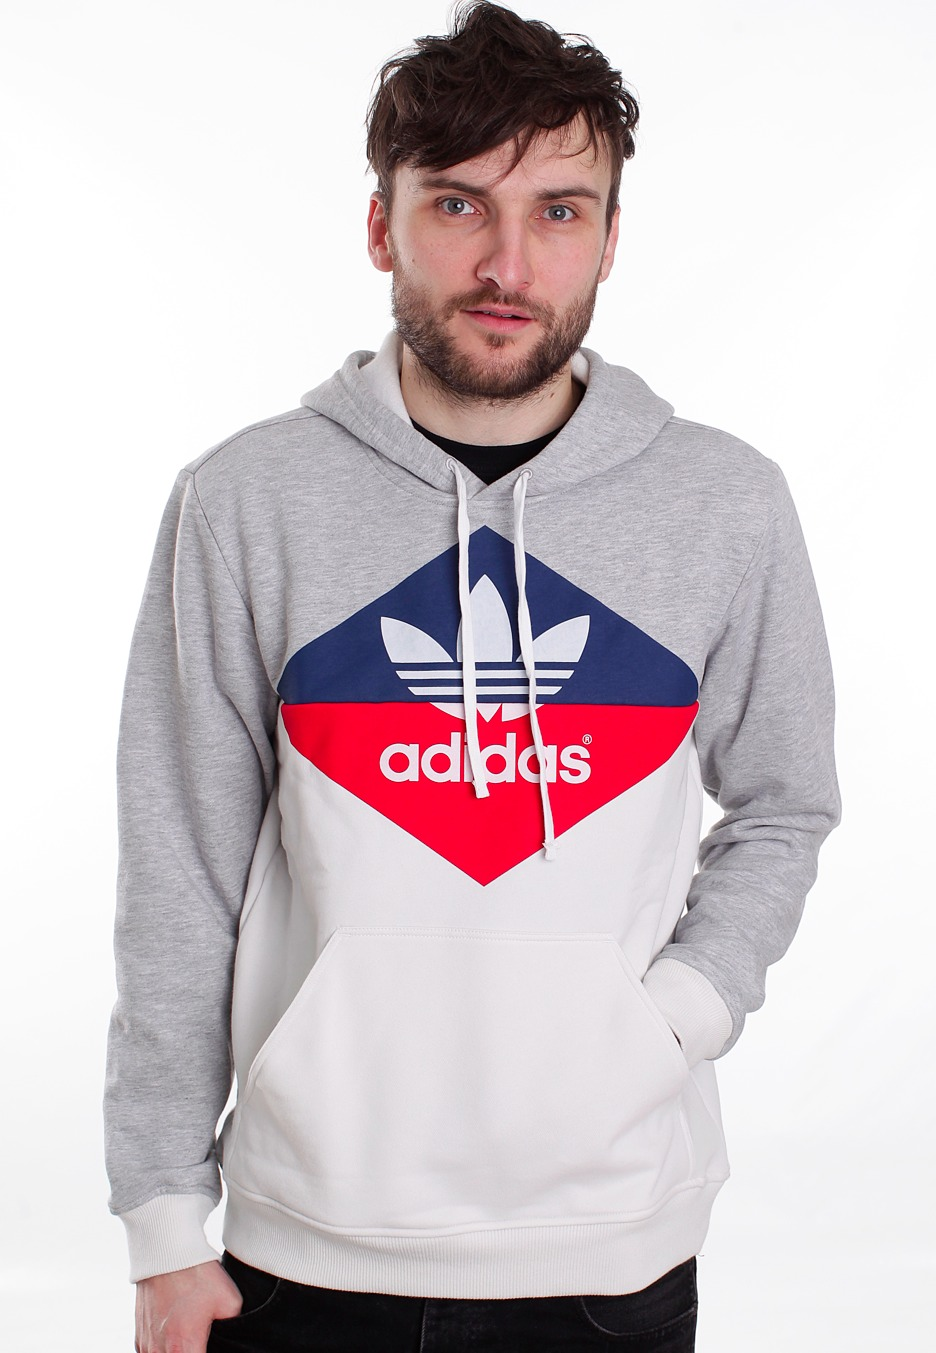 new arrivals 773a8 ee4f5 Adidas - Logo Medium Grey Heather - Hoodie - Streetwear Online ...